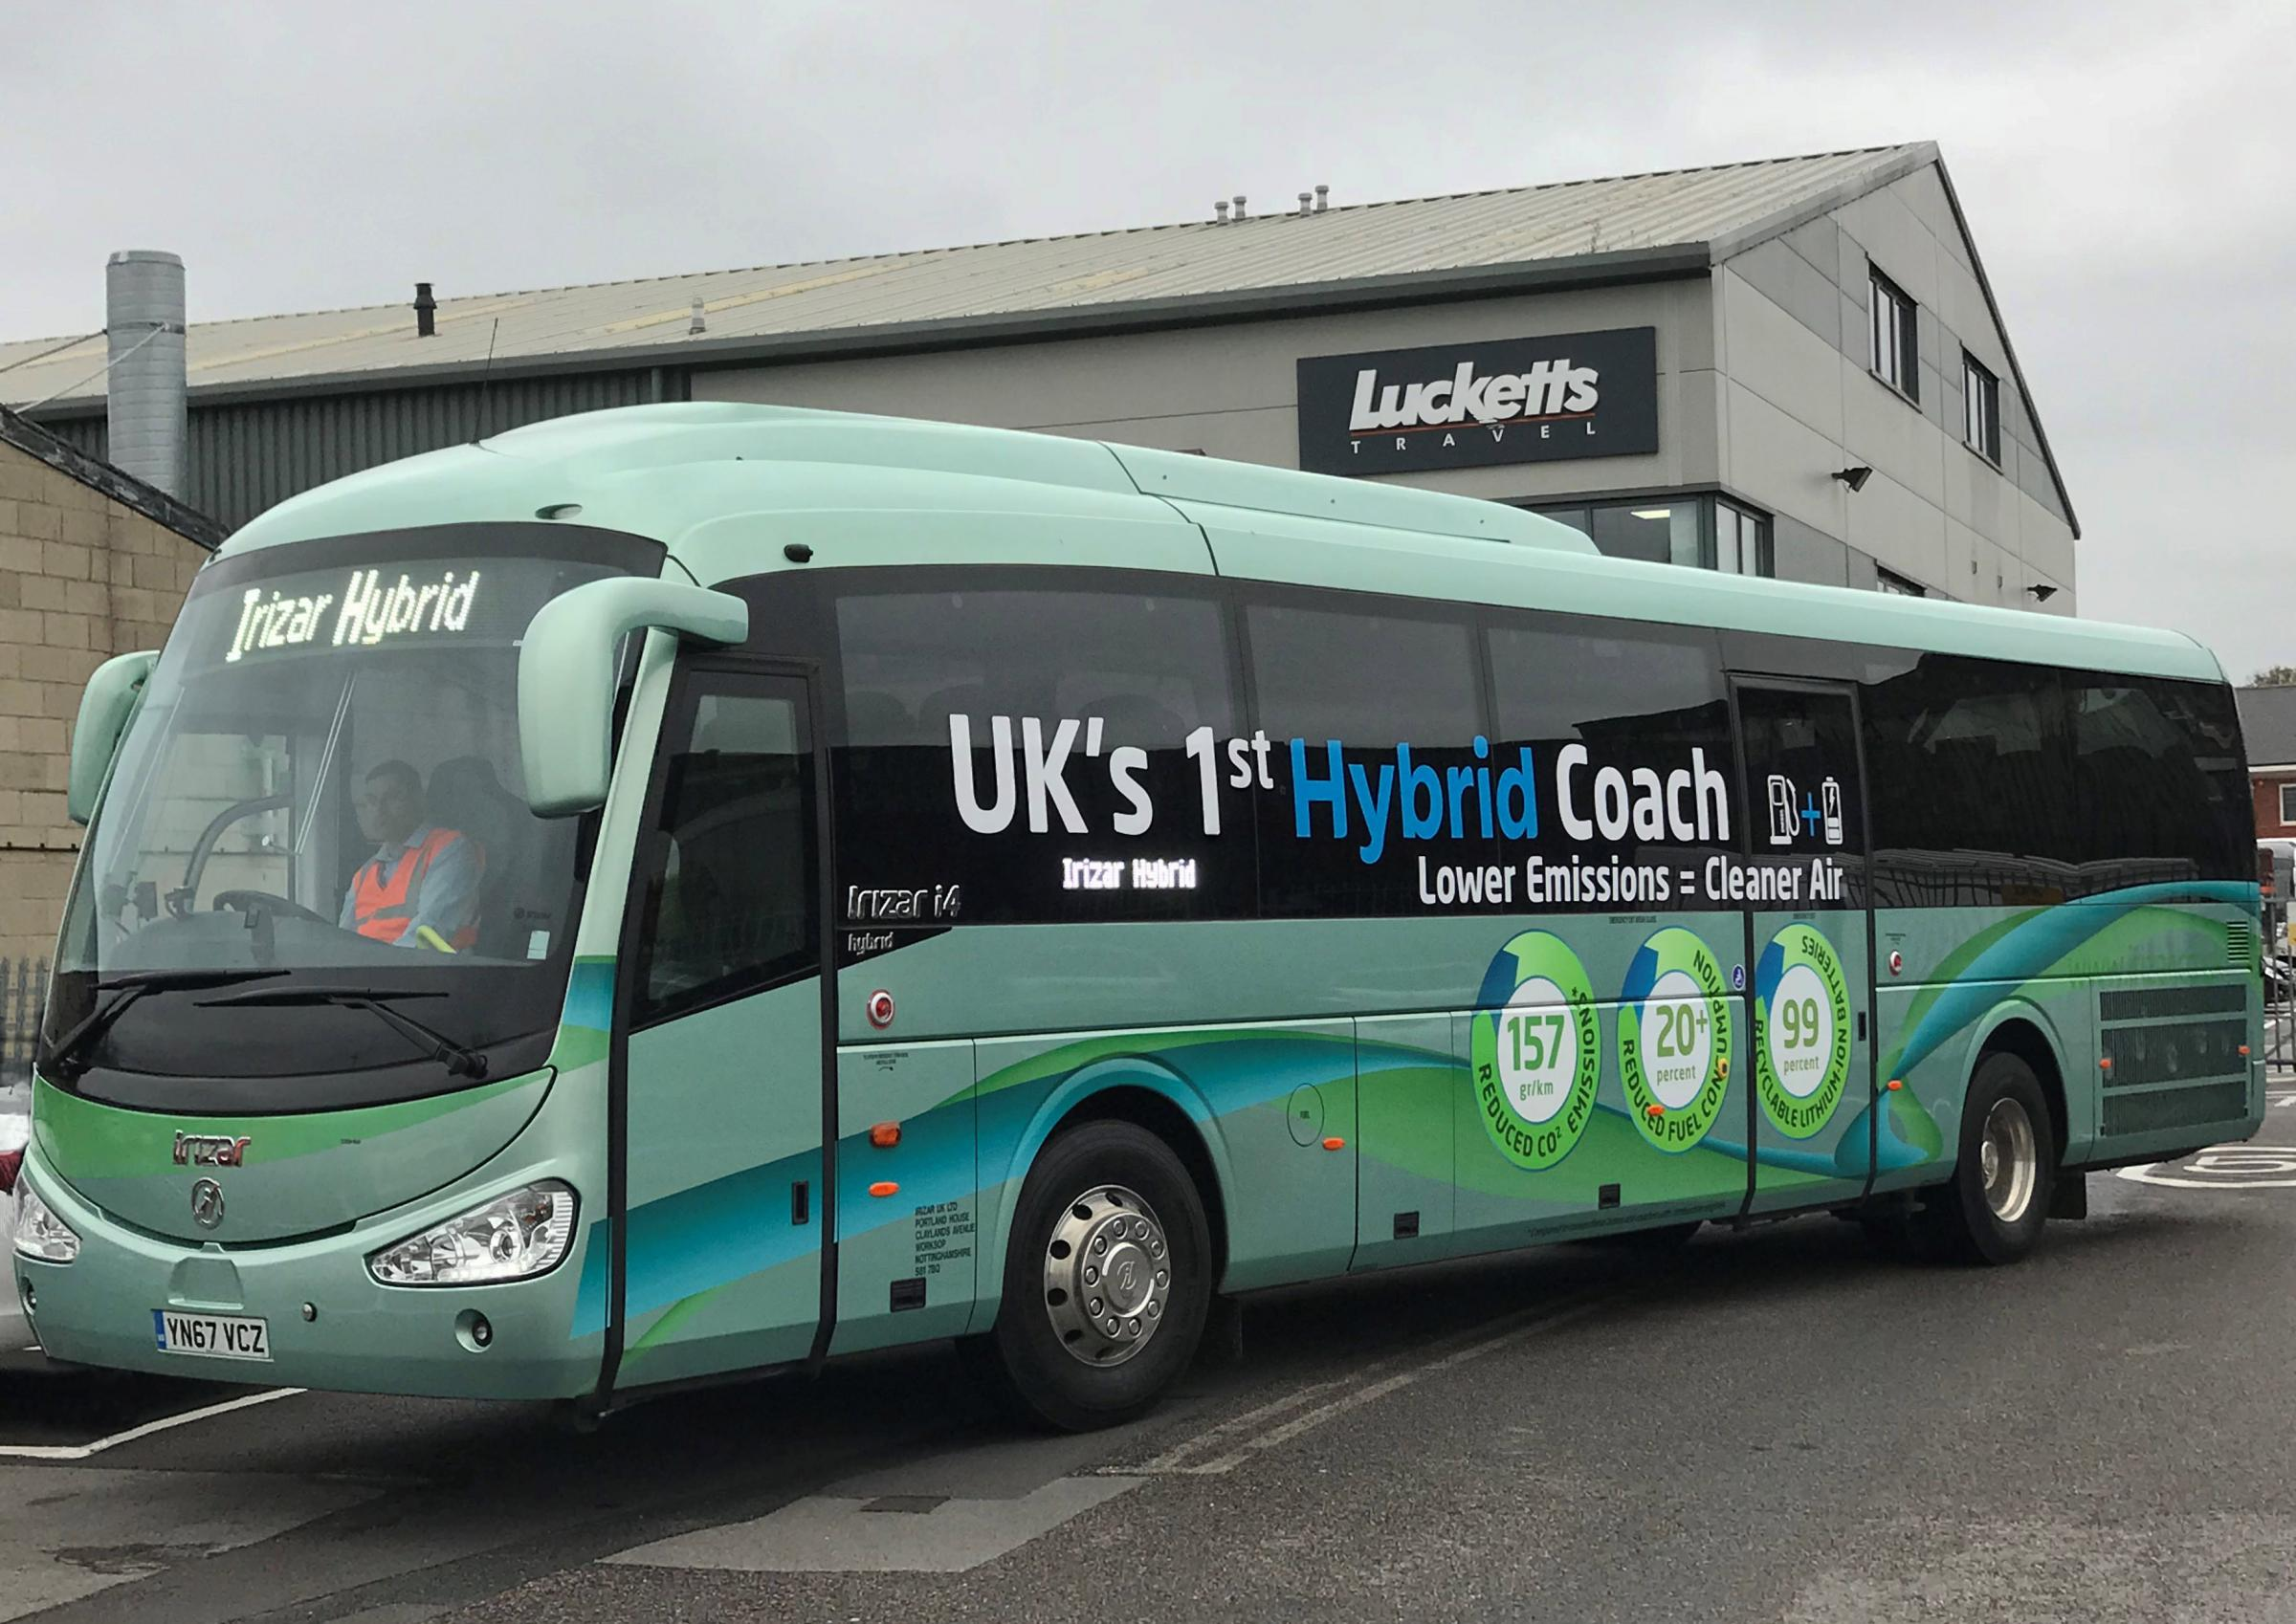 Irizar Hybrid coach being tested by Lucketts